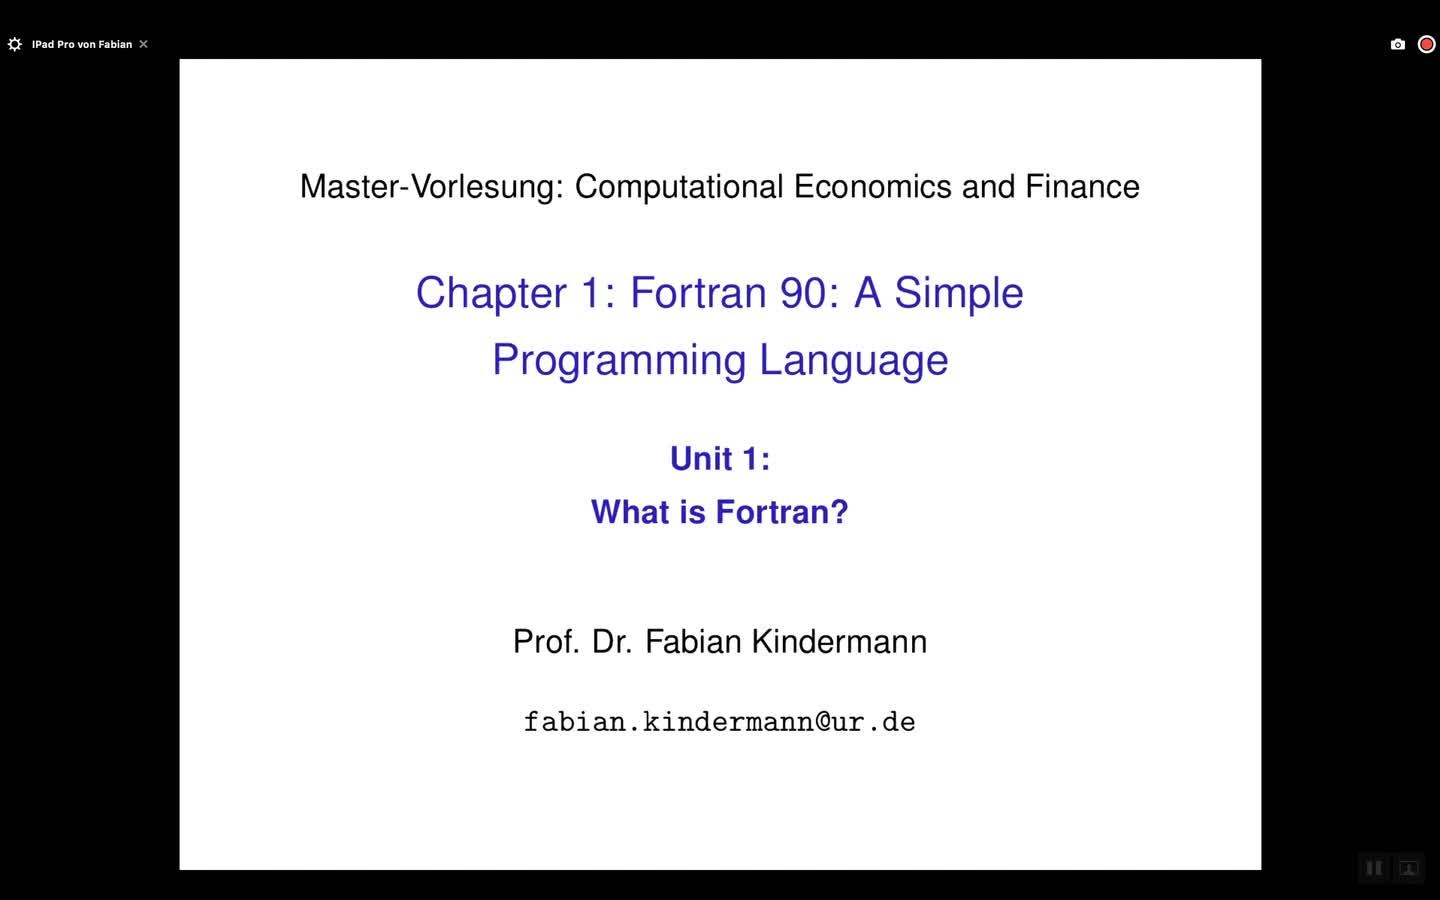 Chapter 1 - Unit 1 - What is Fortran?